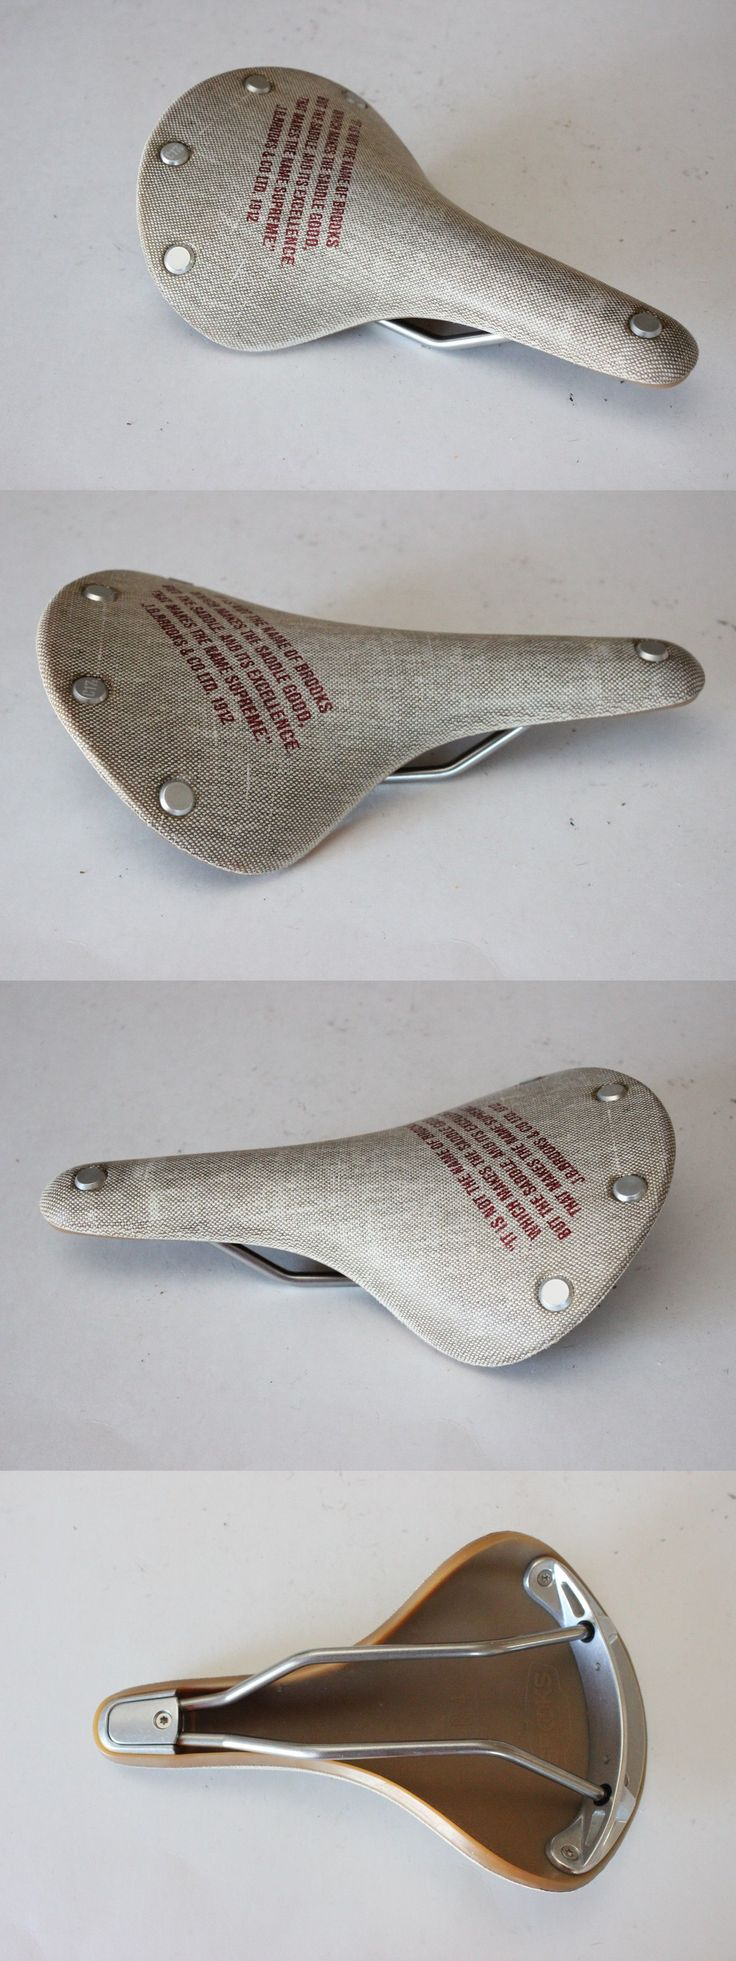 Saddles Seats 177822: New Brooks England C17s Cambium Womens Saddle Natural Road Bike Comfort 162Mm -> BUY IT NOW ONLY: $99.99 on eBay!